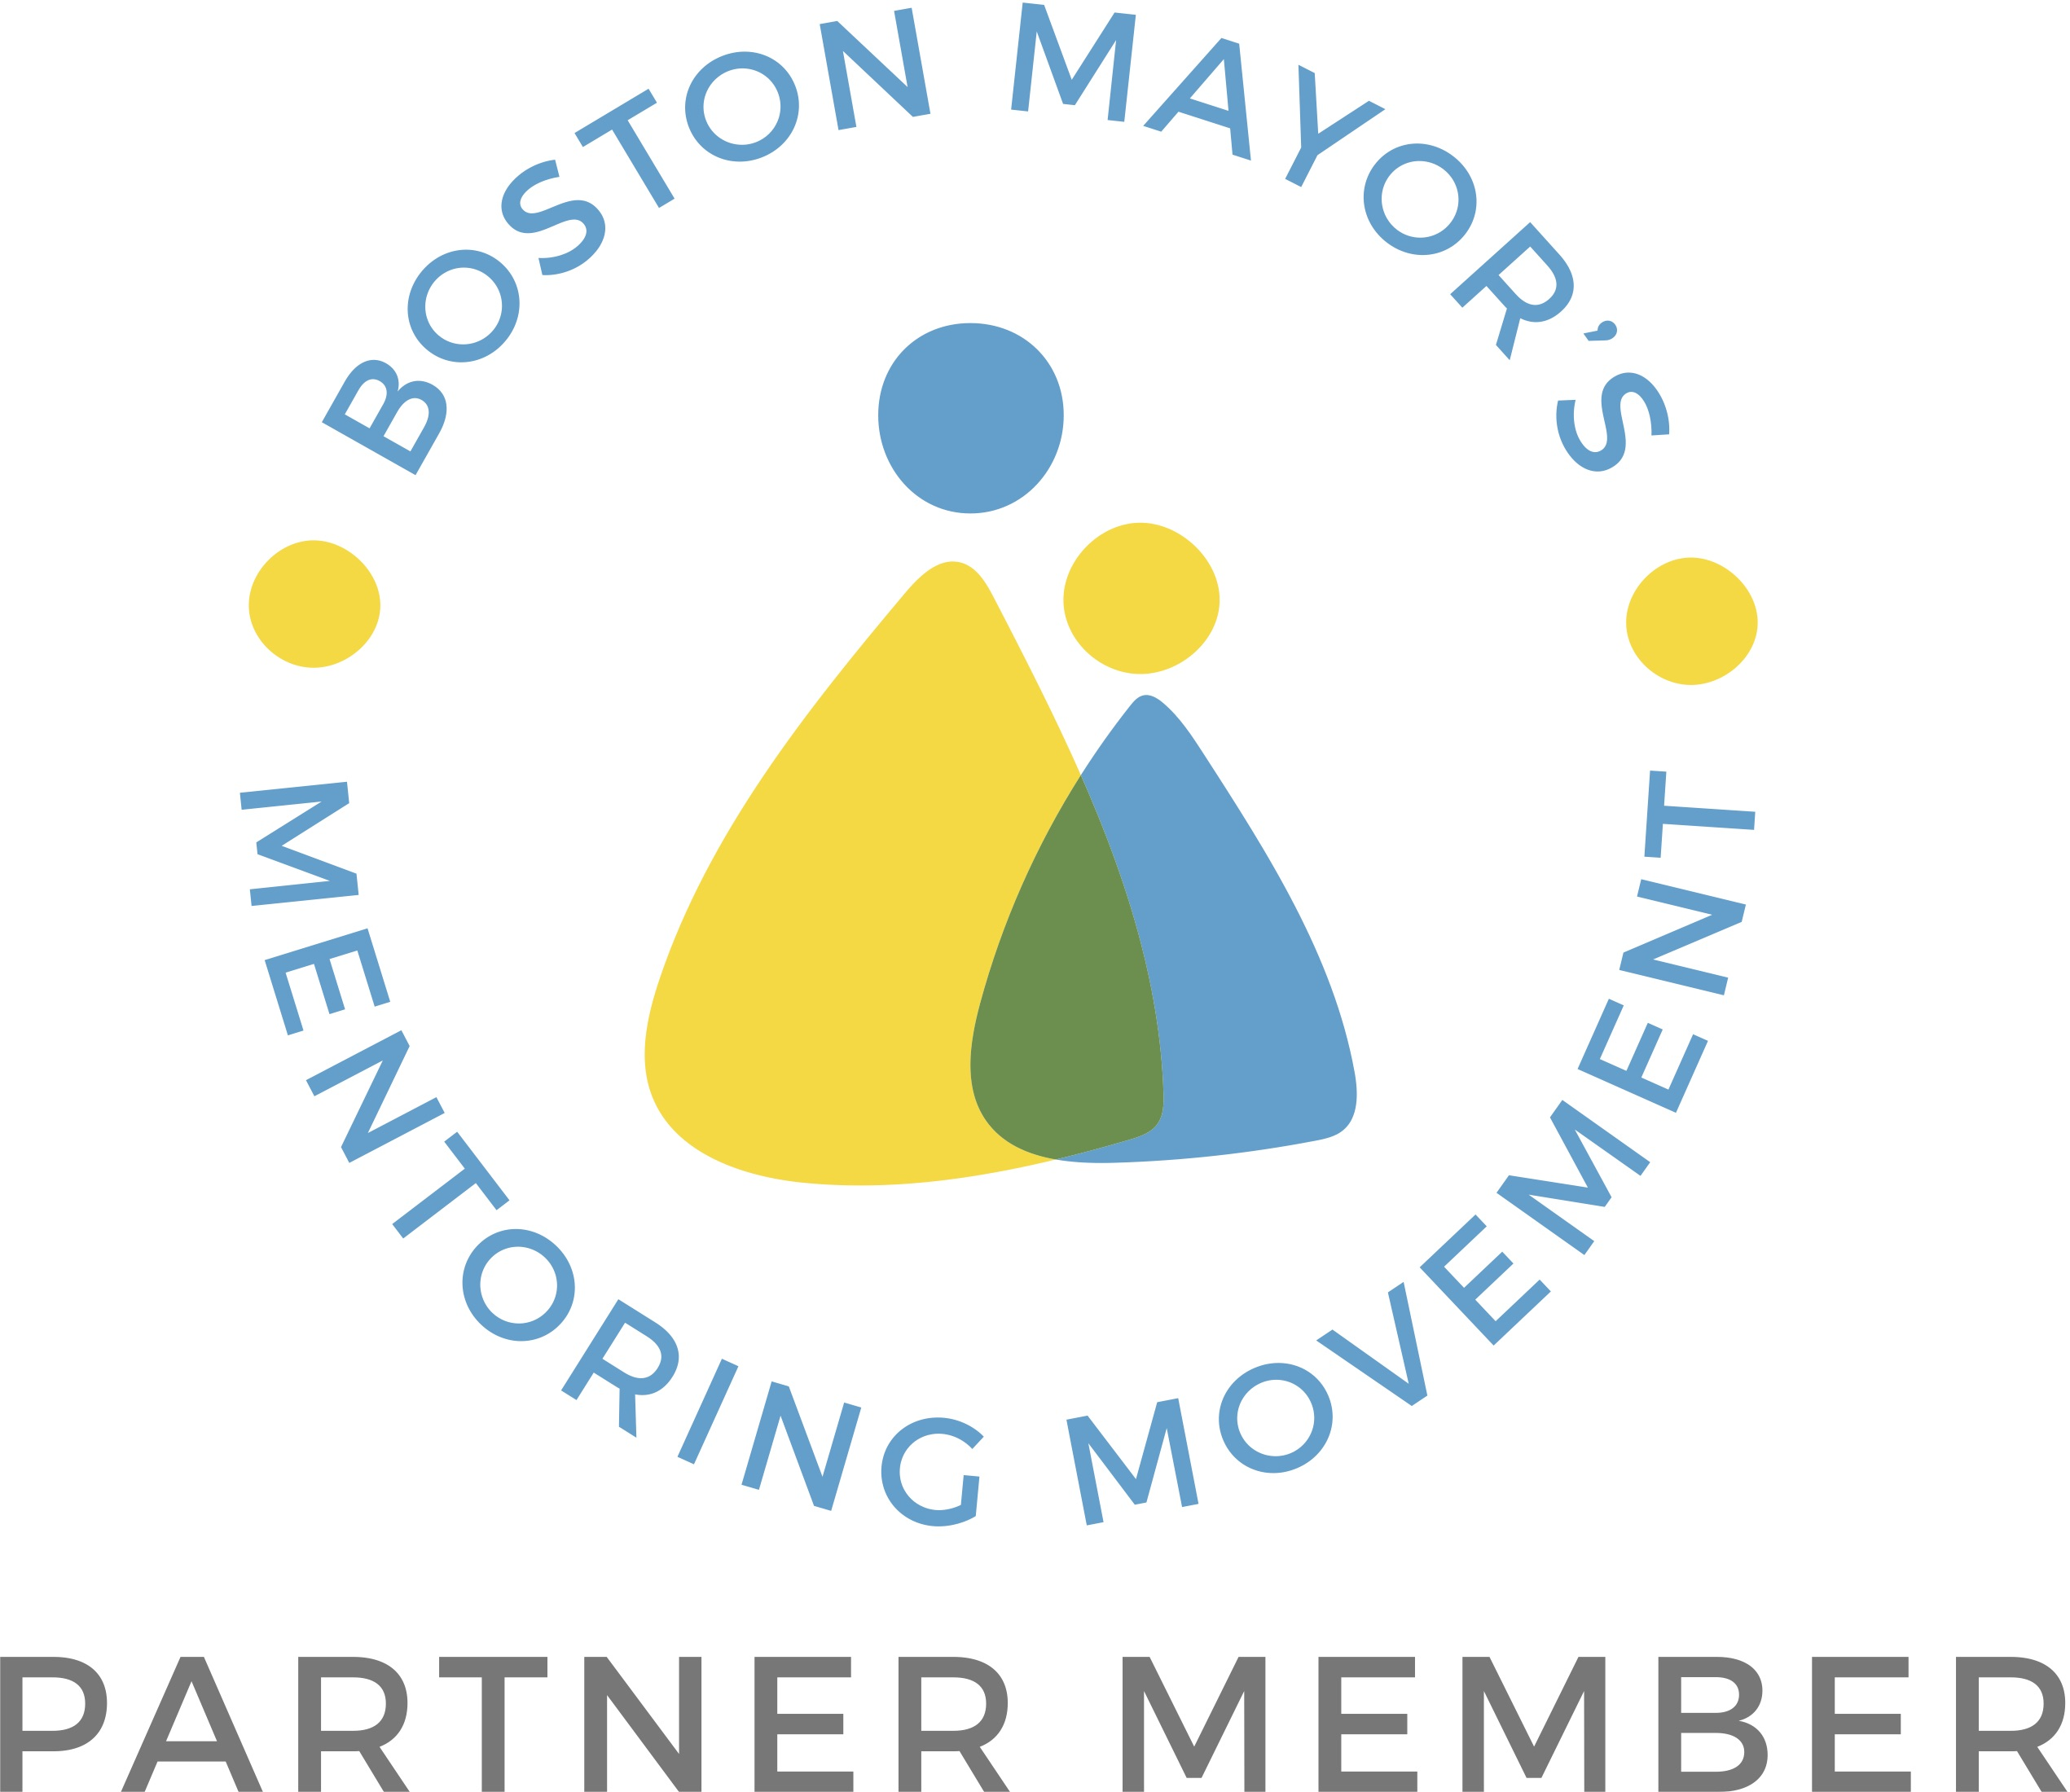 Boston Mayor's Mentoring Movement